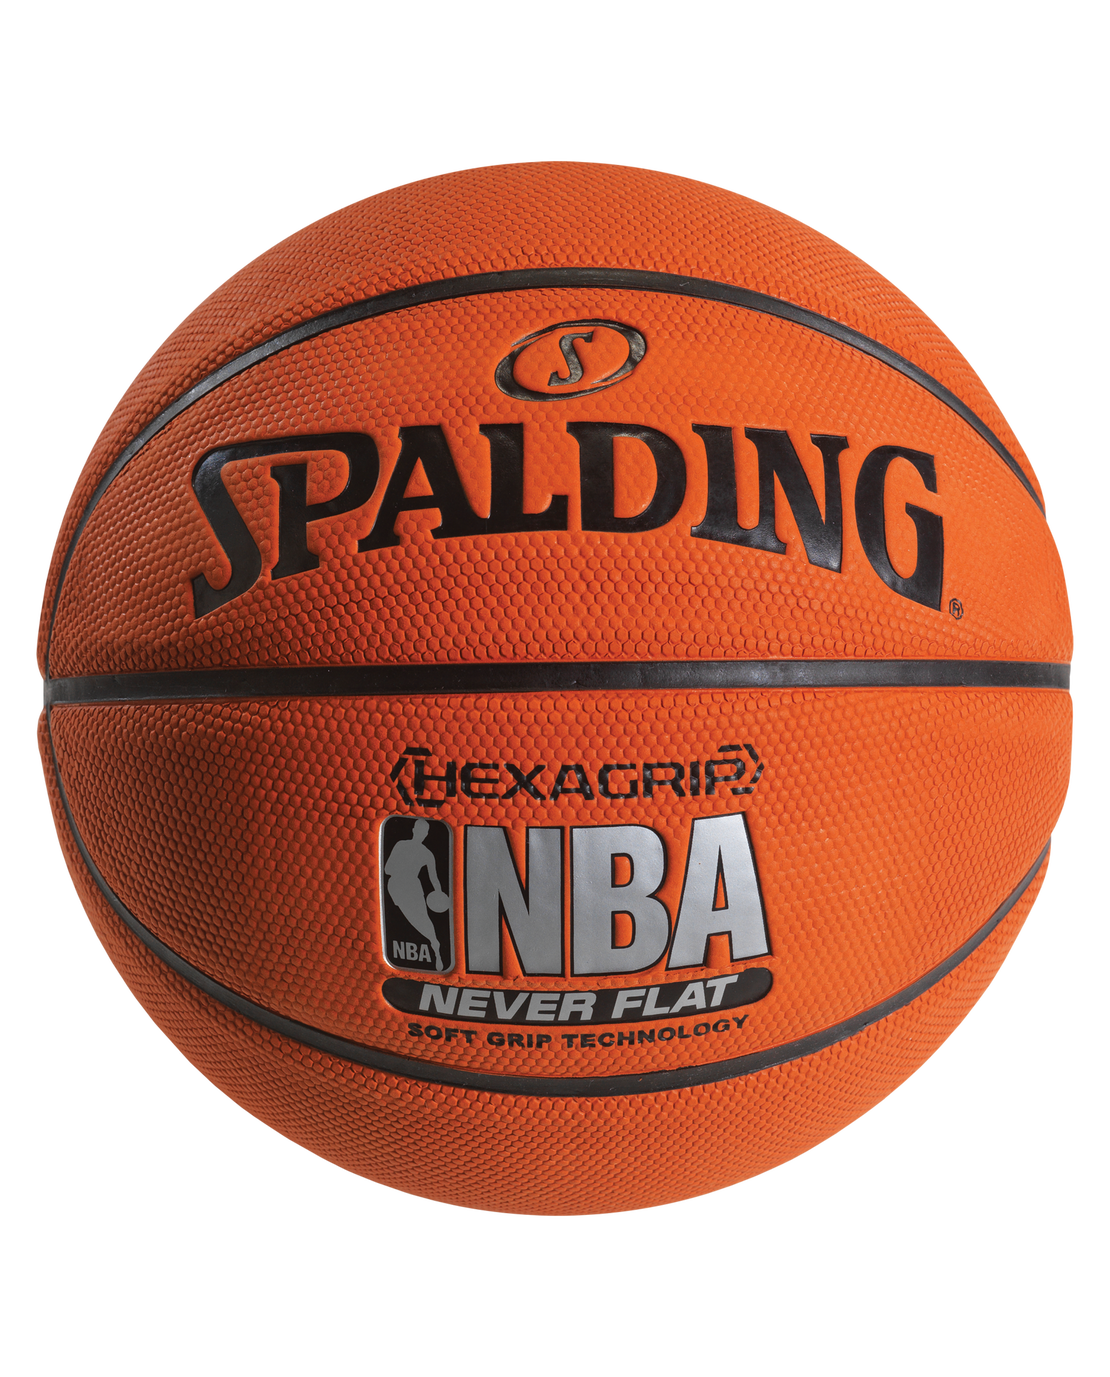 Neverflat hexagrip basketball spalding us - Spalding basketball images ...